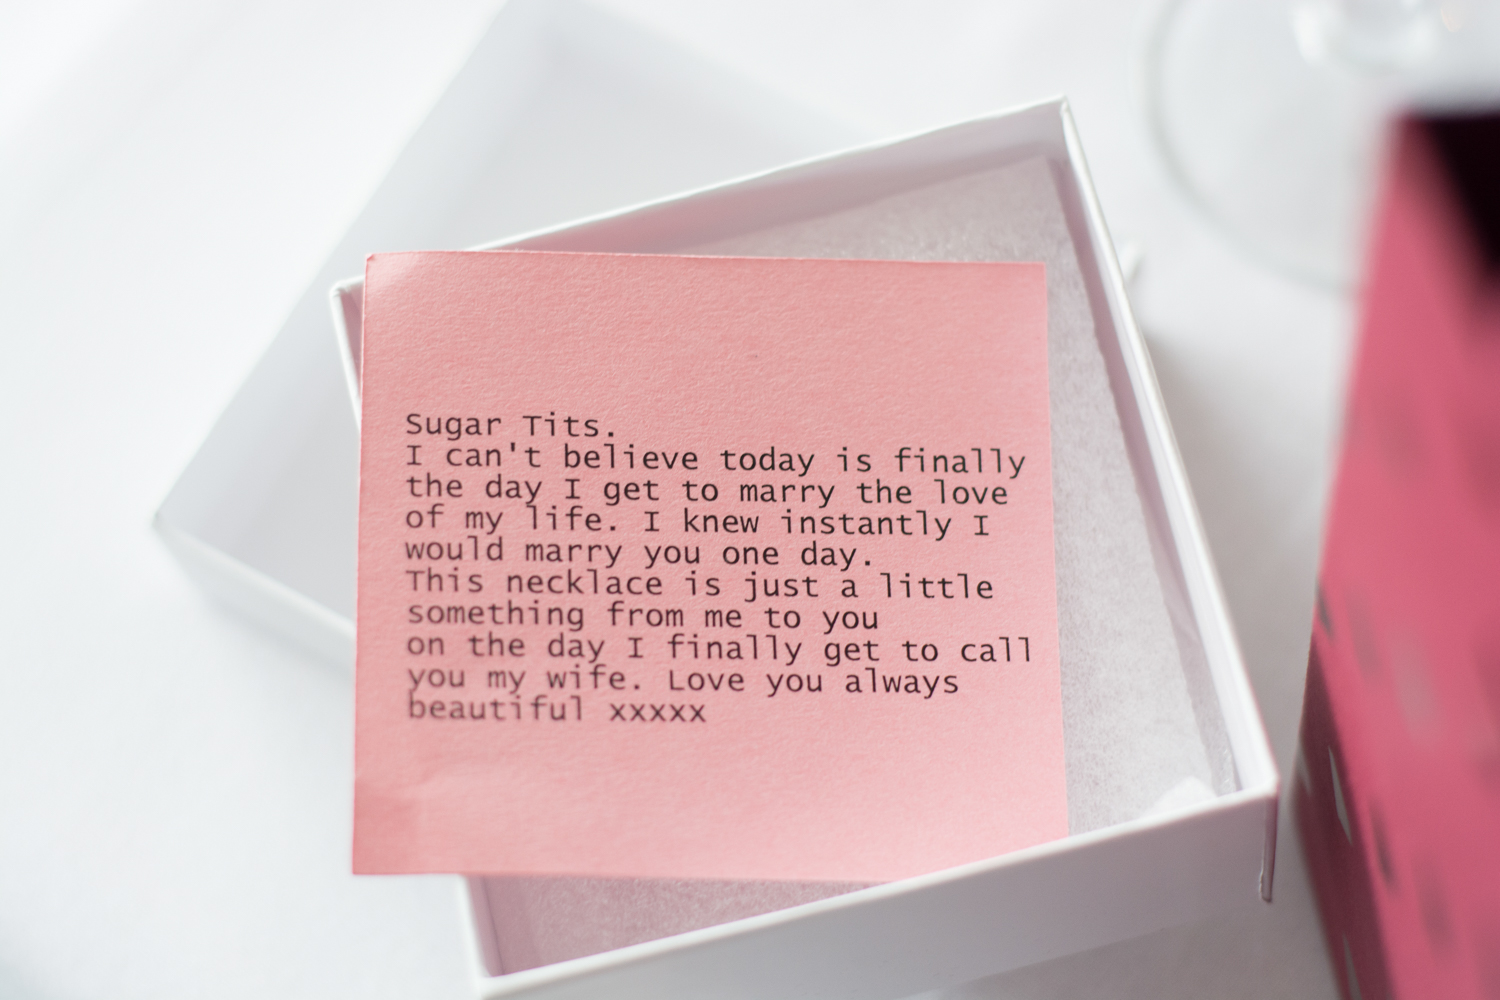 lovely note from the groom to the bride on their wedding day. He calls her Sugar Tits